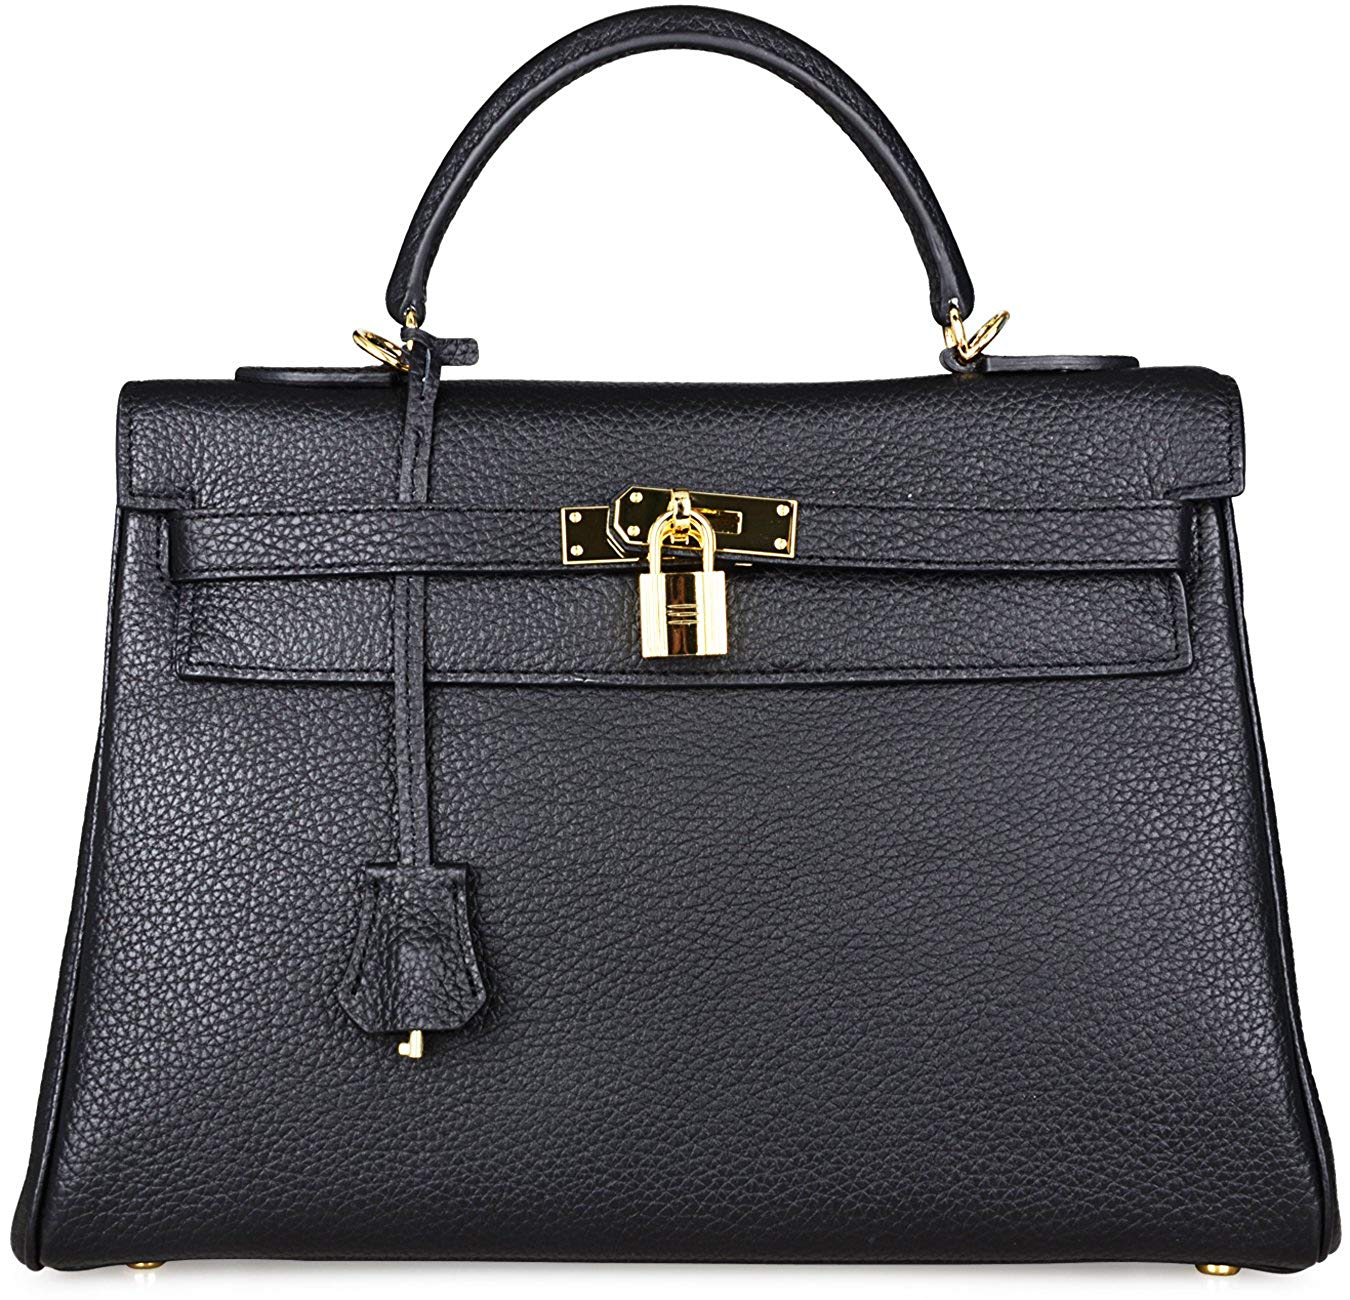 Ava Leather Padlock Handbag - Gold Hardware 32 cm